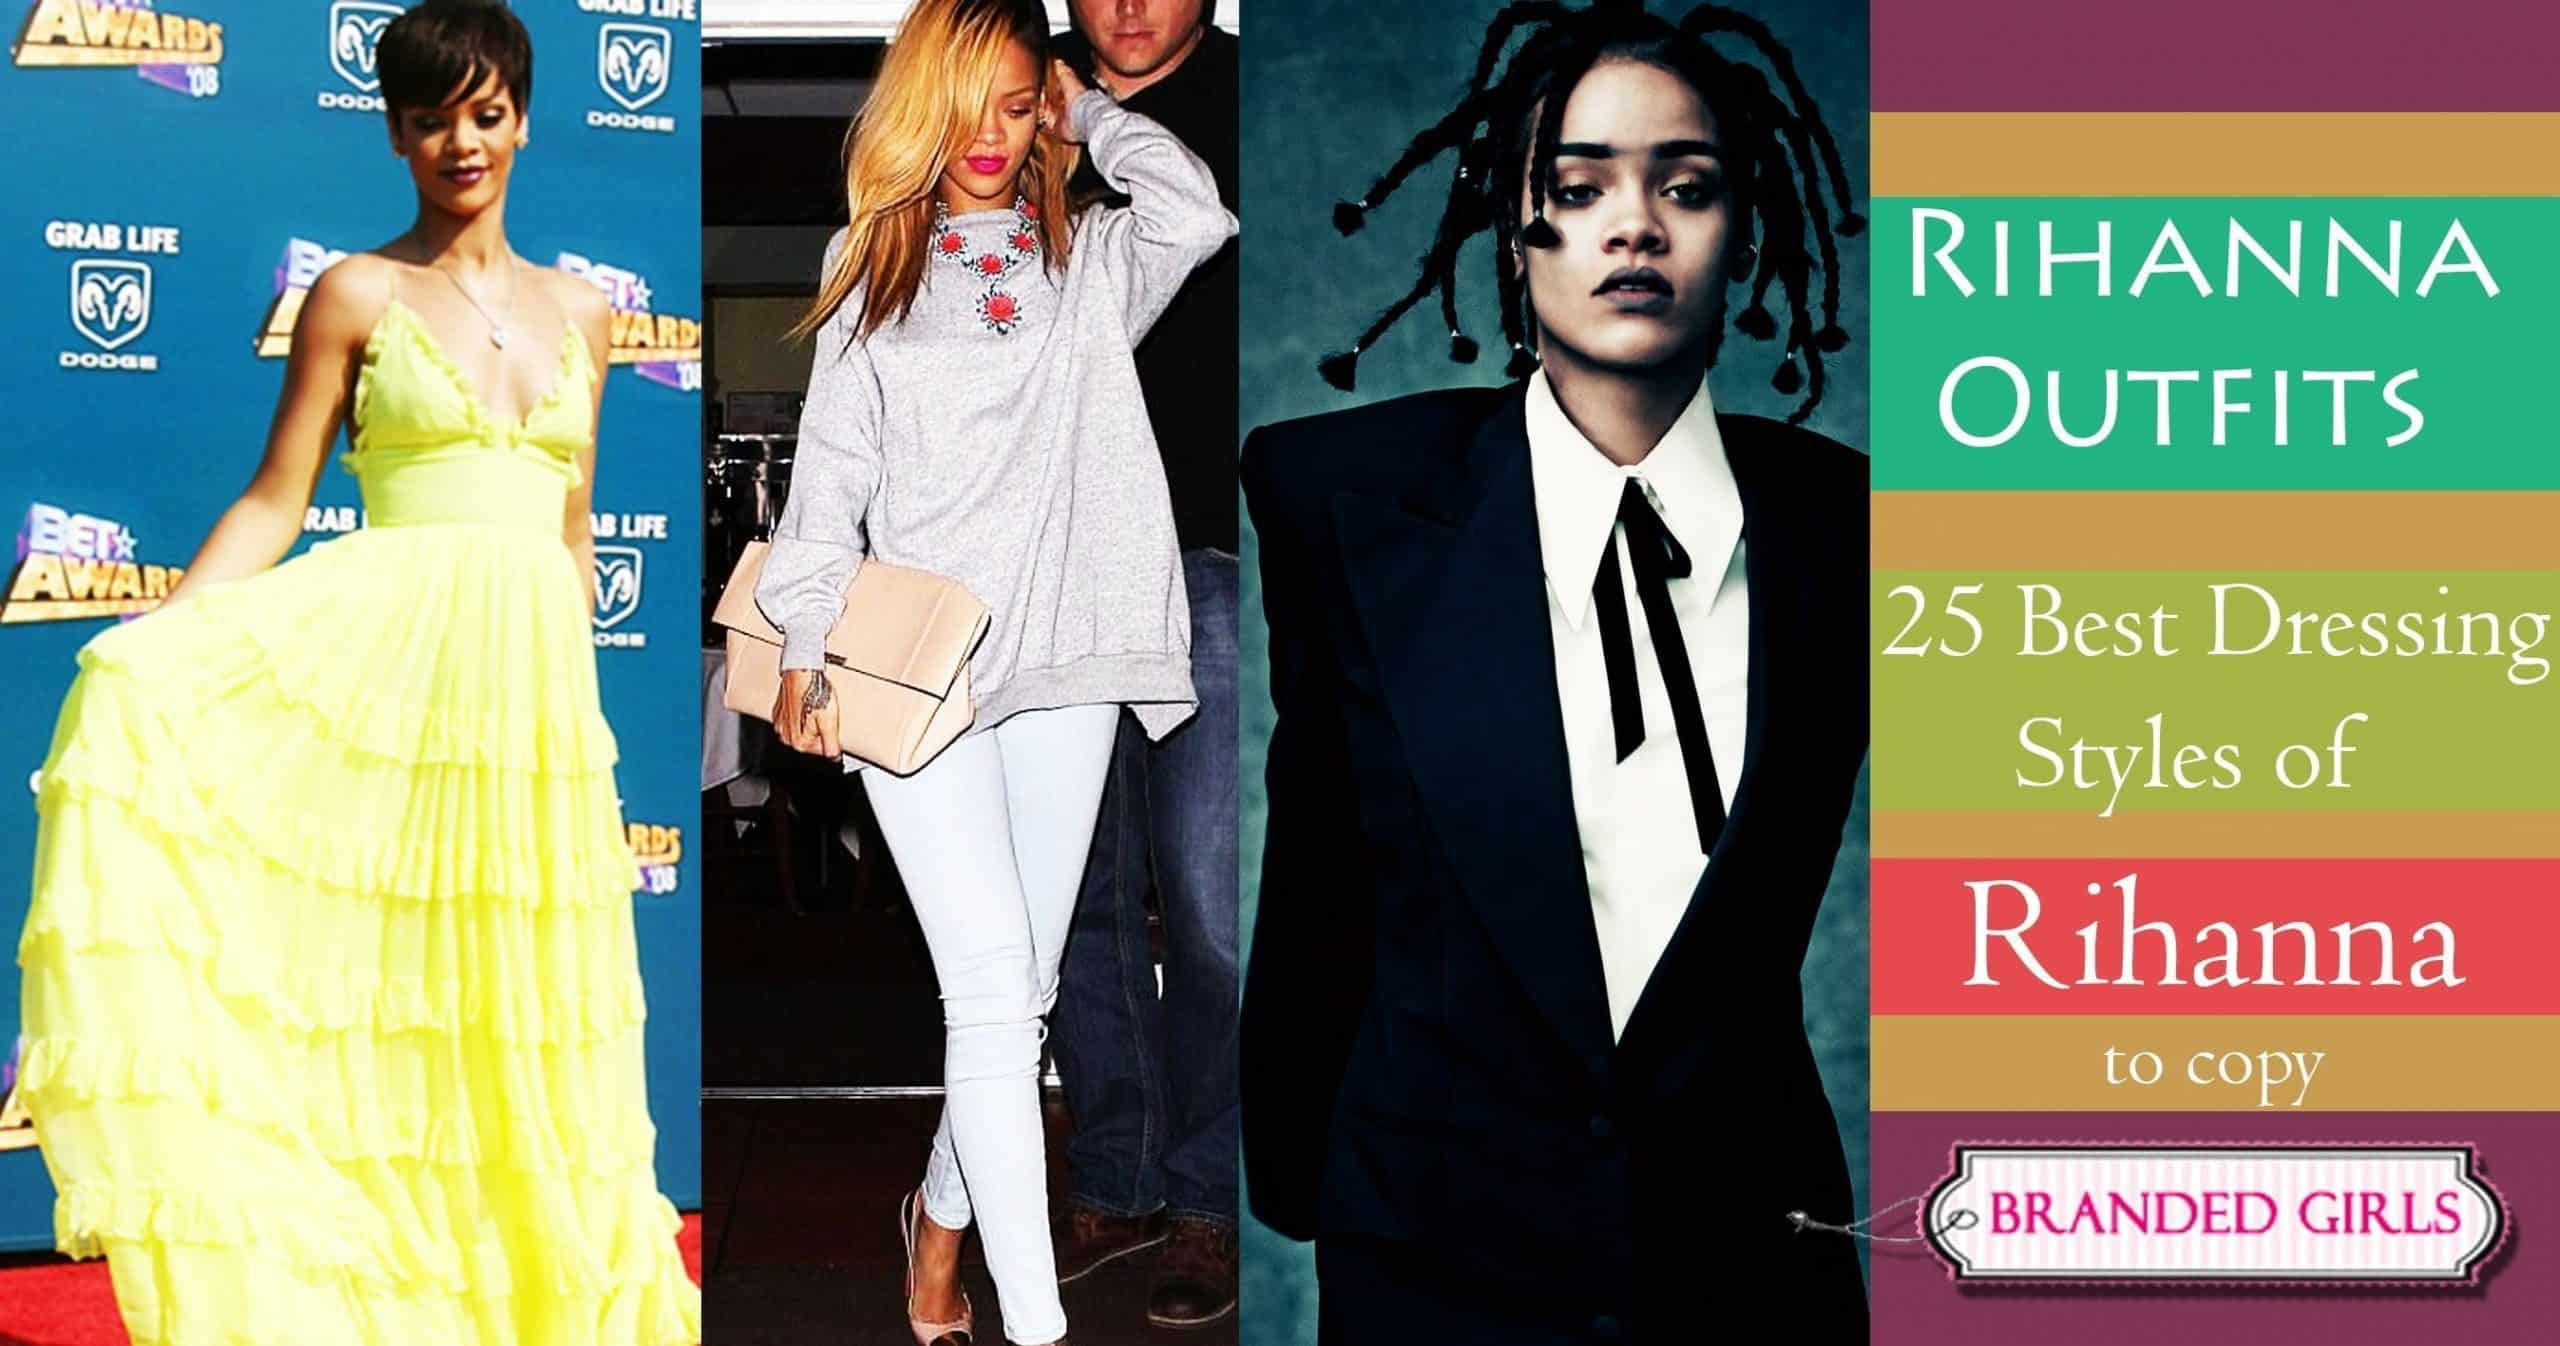 25 best dressing styles of rihanna